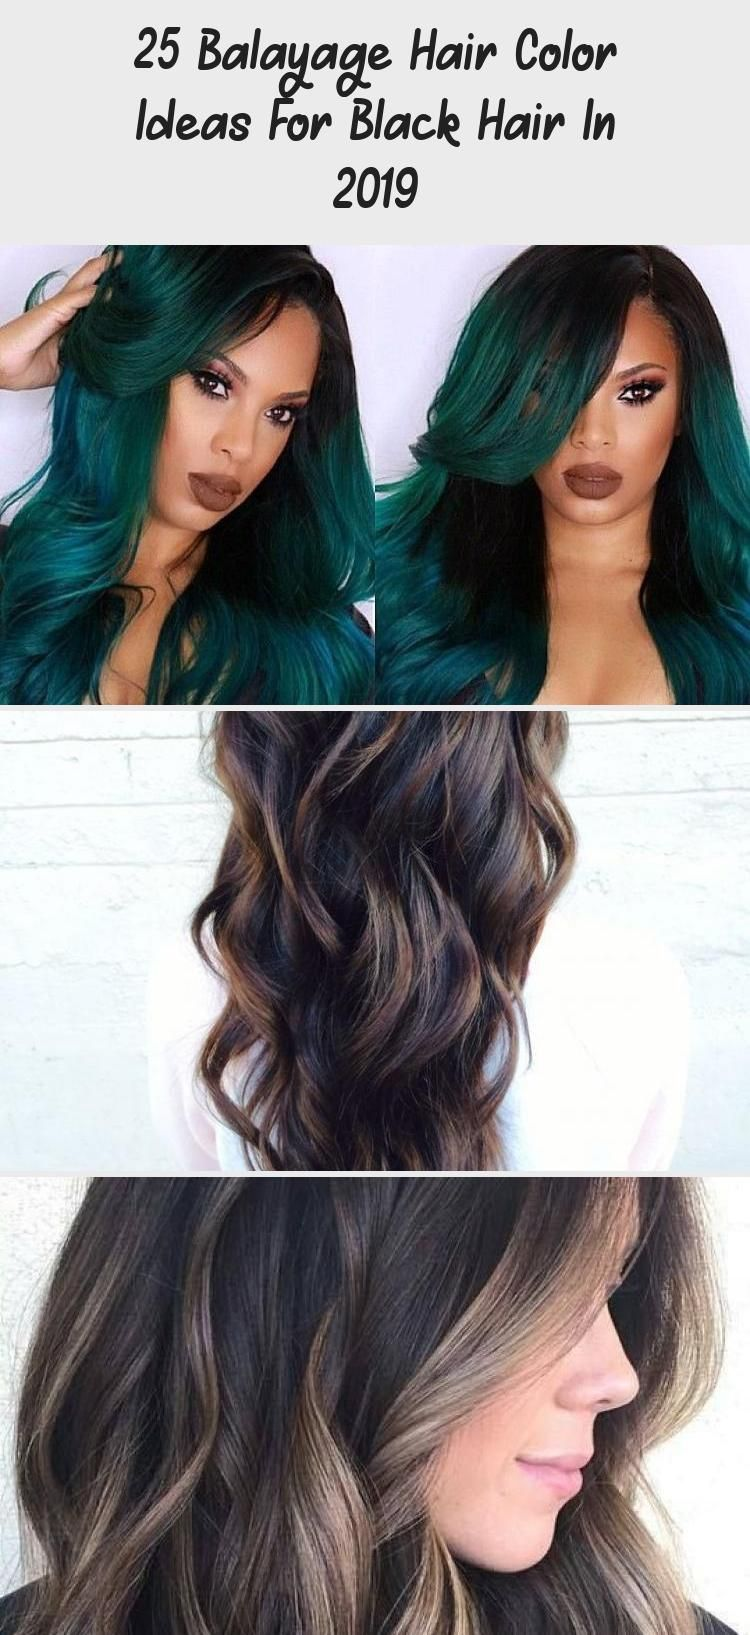 9 Balayage Hair Color Ideas For Black Hair In 9, Balayage ...